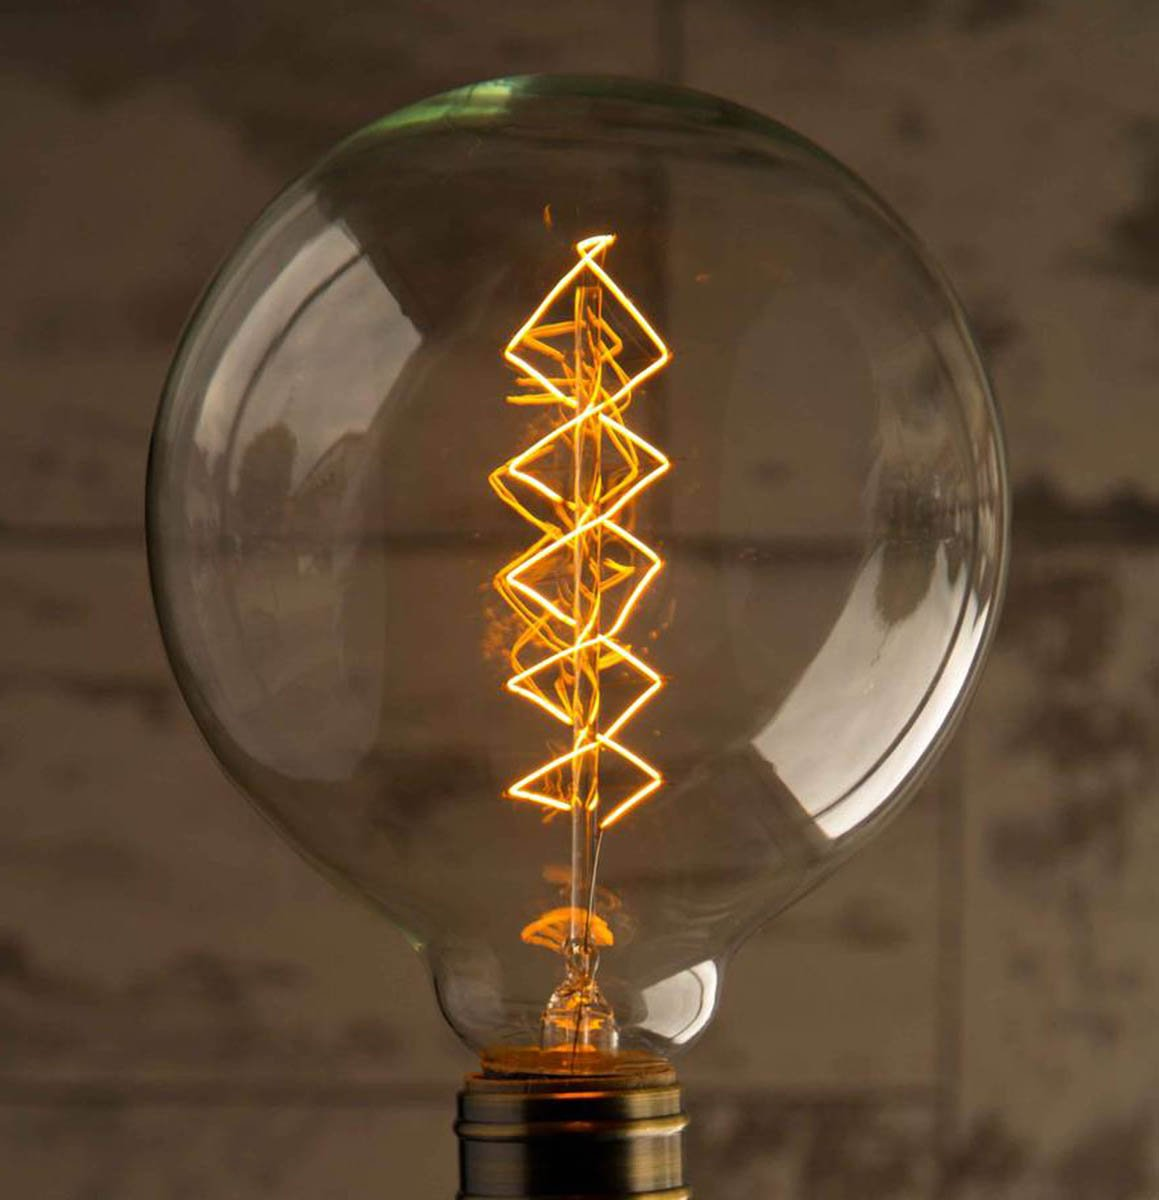 Globe Large 3-Pack 40W Warm Rustic Dimmable Light Bulb Spiral Filament, Vintage Incandescent Edison E27 Electric Light, Create The Perfect Atmosphere For Bar Restaurant Coffee Shop And Home Use LOMT